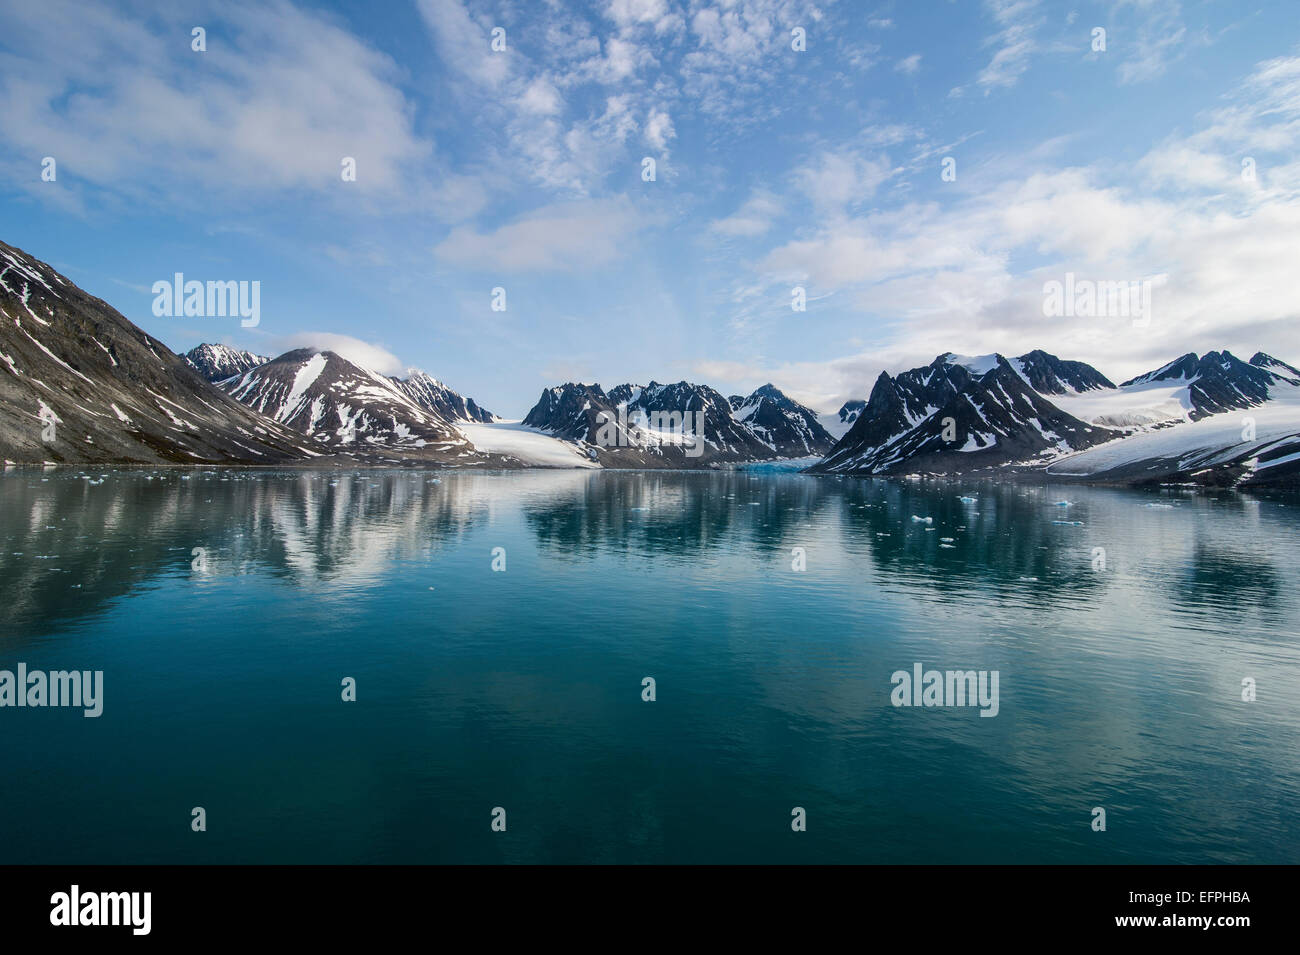 Mountains reflecting in the water in the Magdalenen Fjord, Svalbard, Arctic, Norway, Scandinavia, Europe - Stock Image